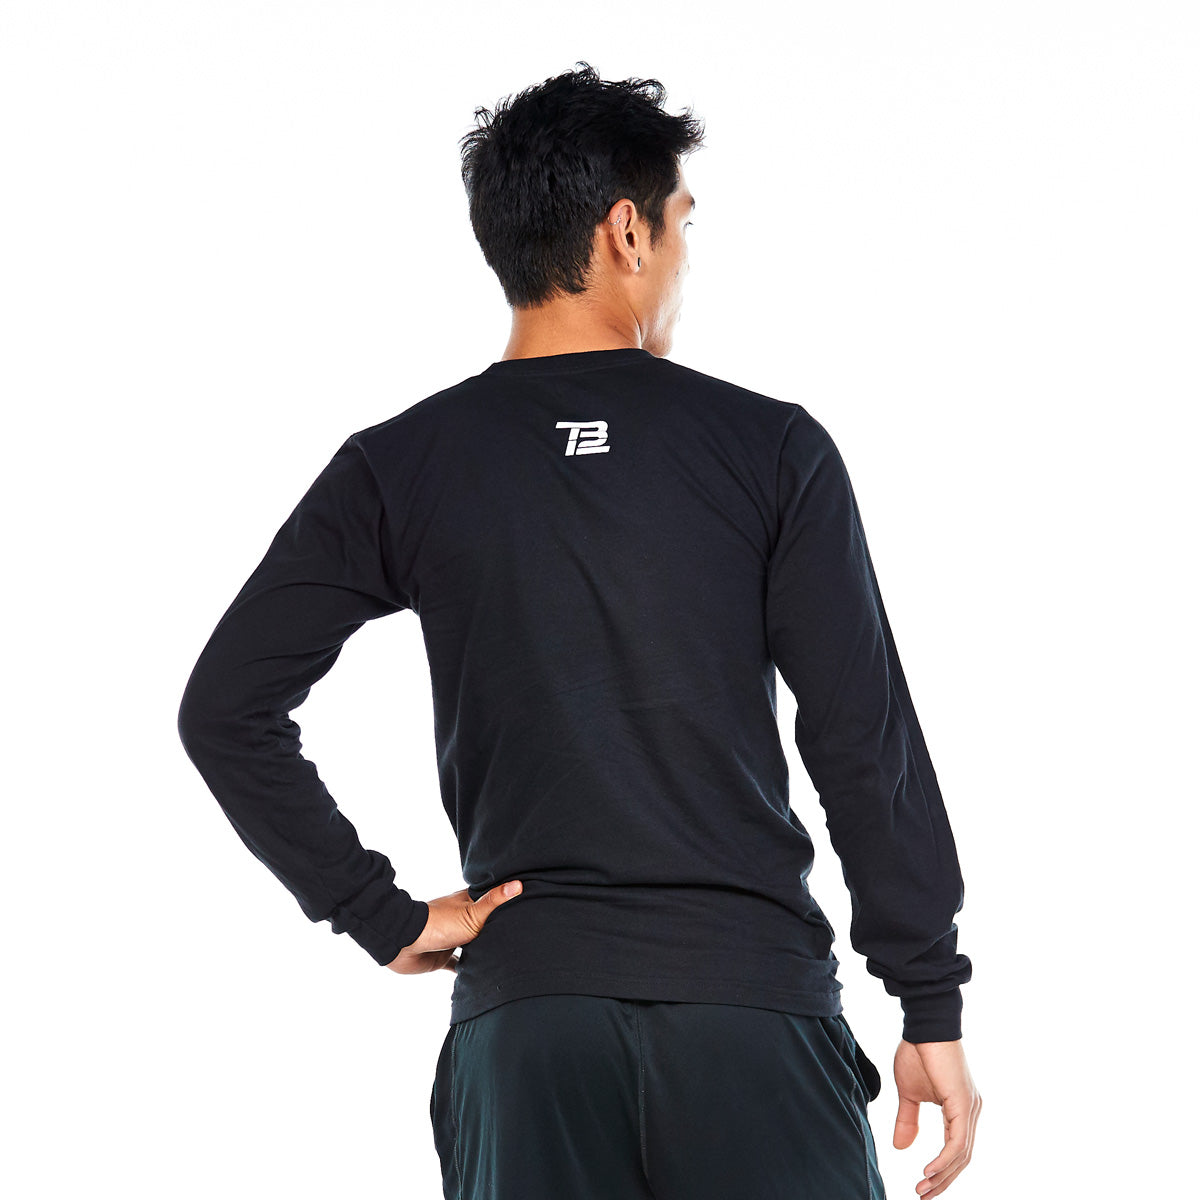 TB12™ Pliability Long-sleeved T-shirts